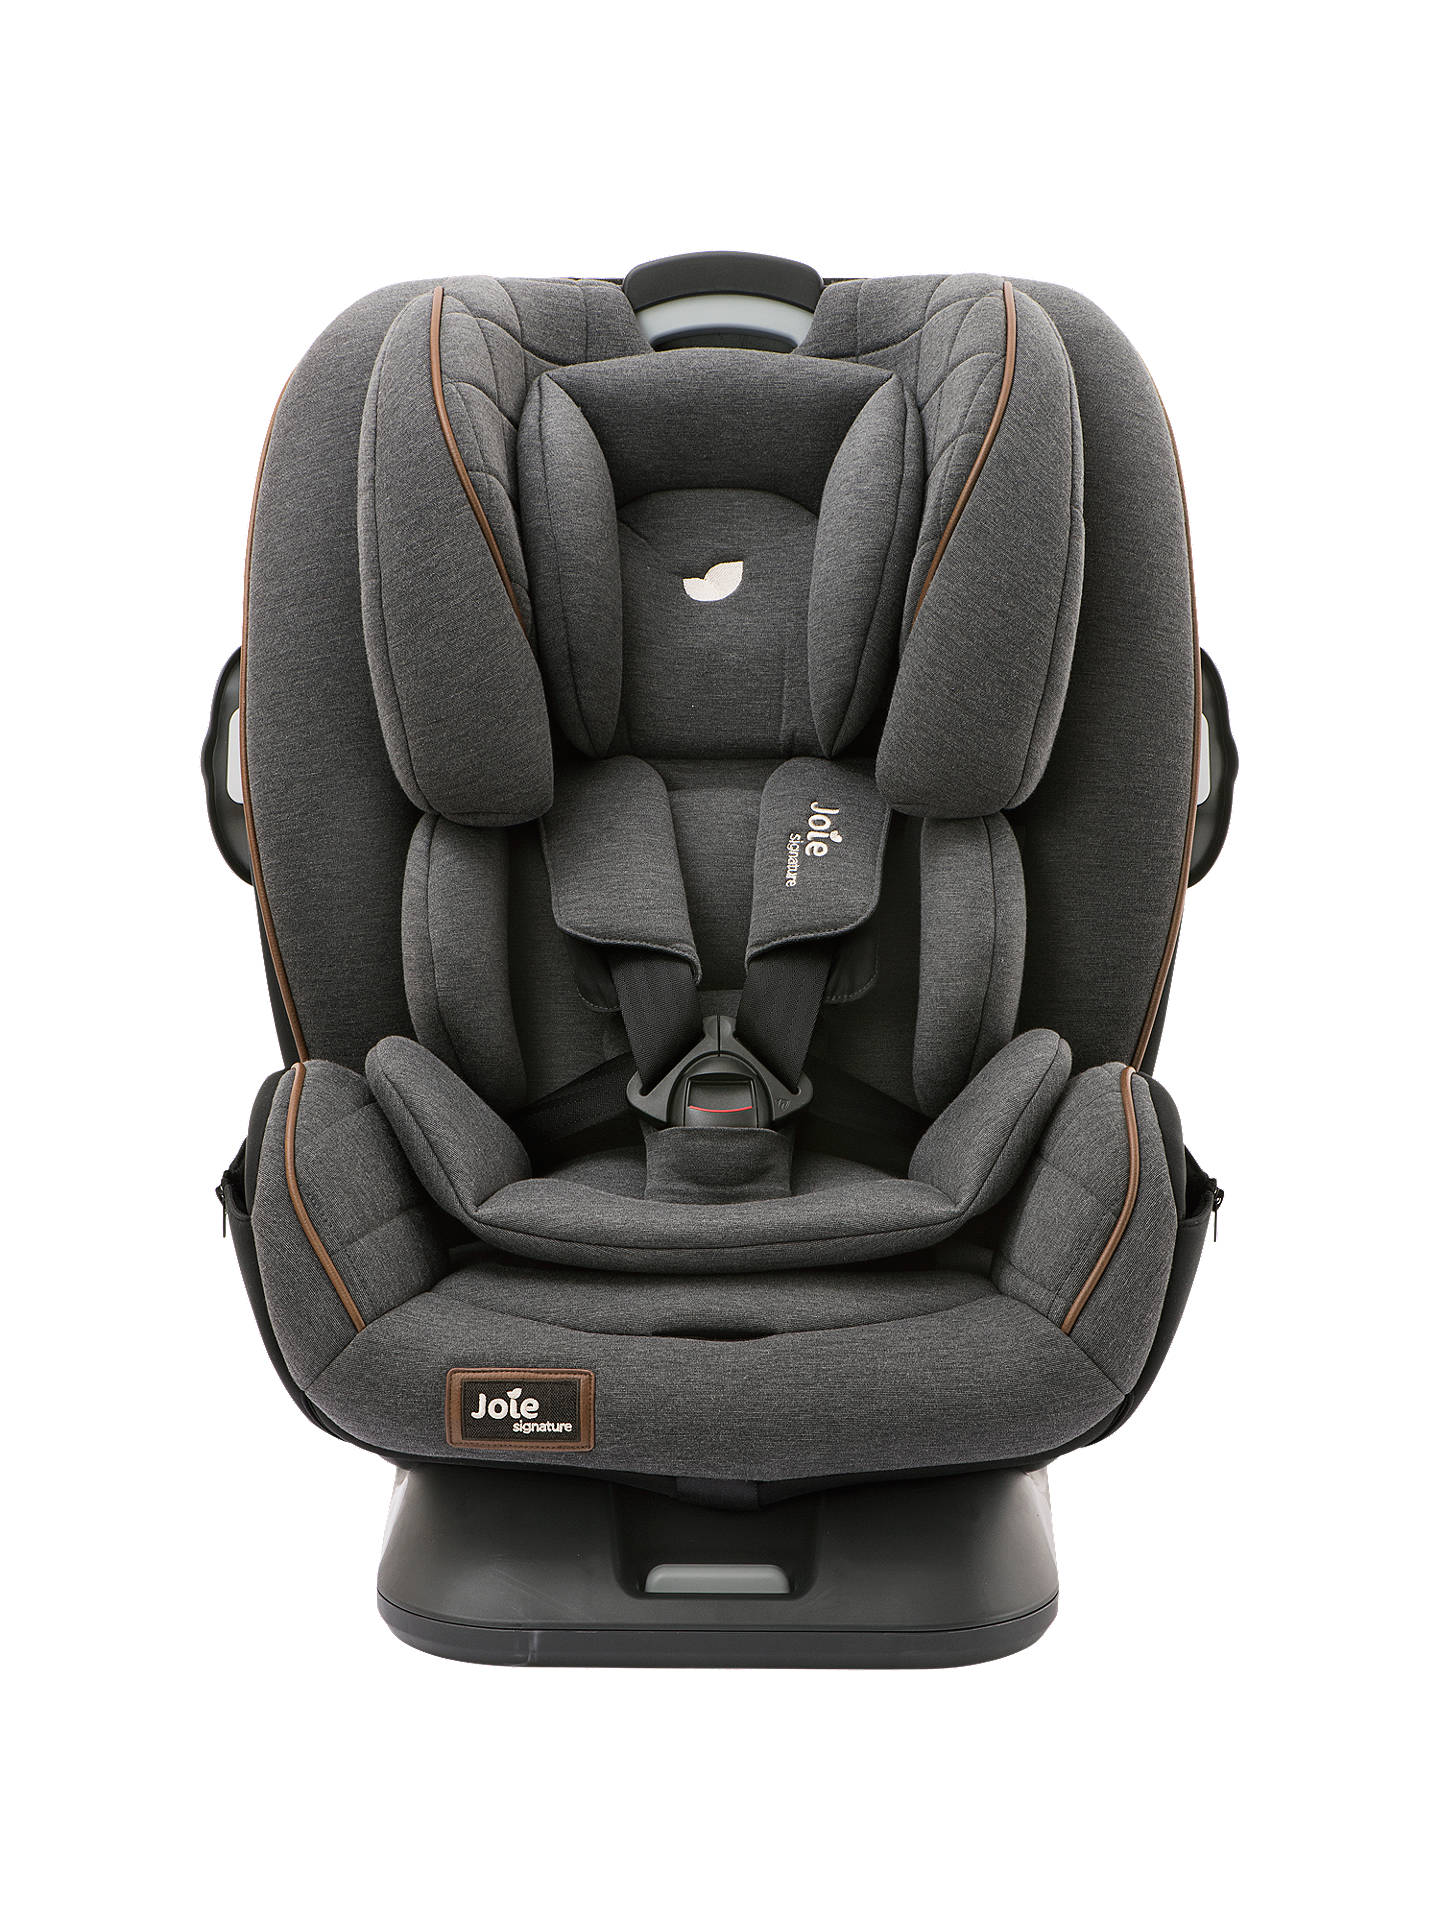 joie every stage fx signature group 0 1 2 3 car seat. Black Bedroom Furniture Sets. Home Design Ideas